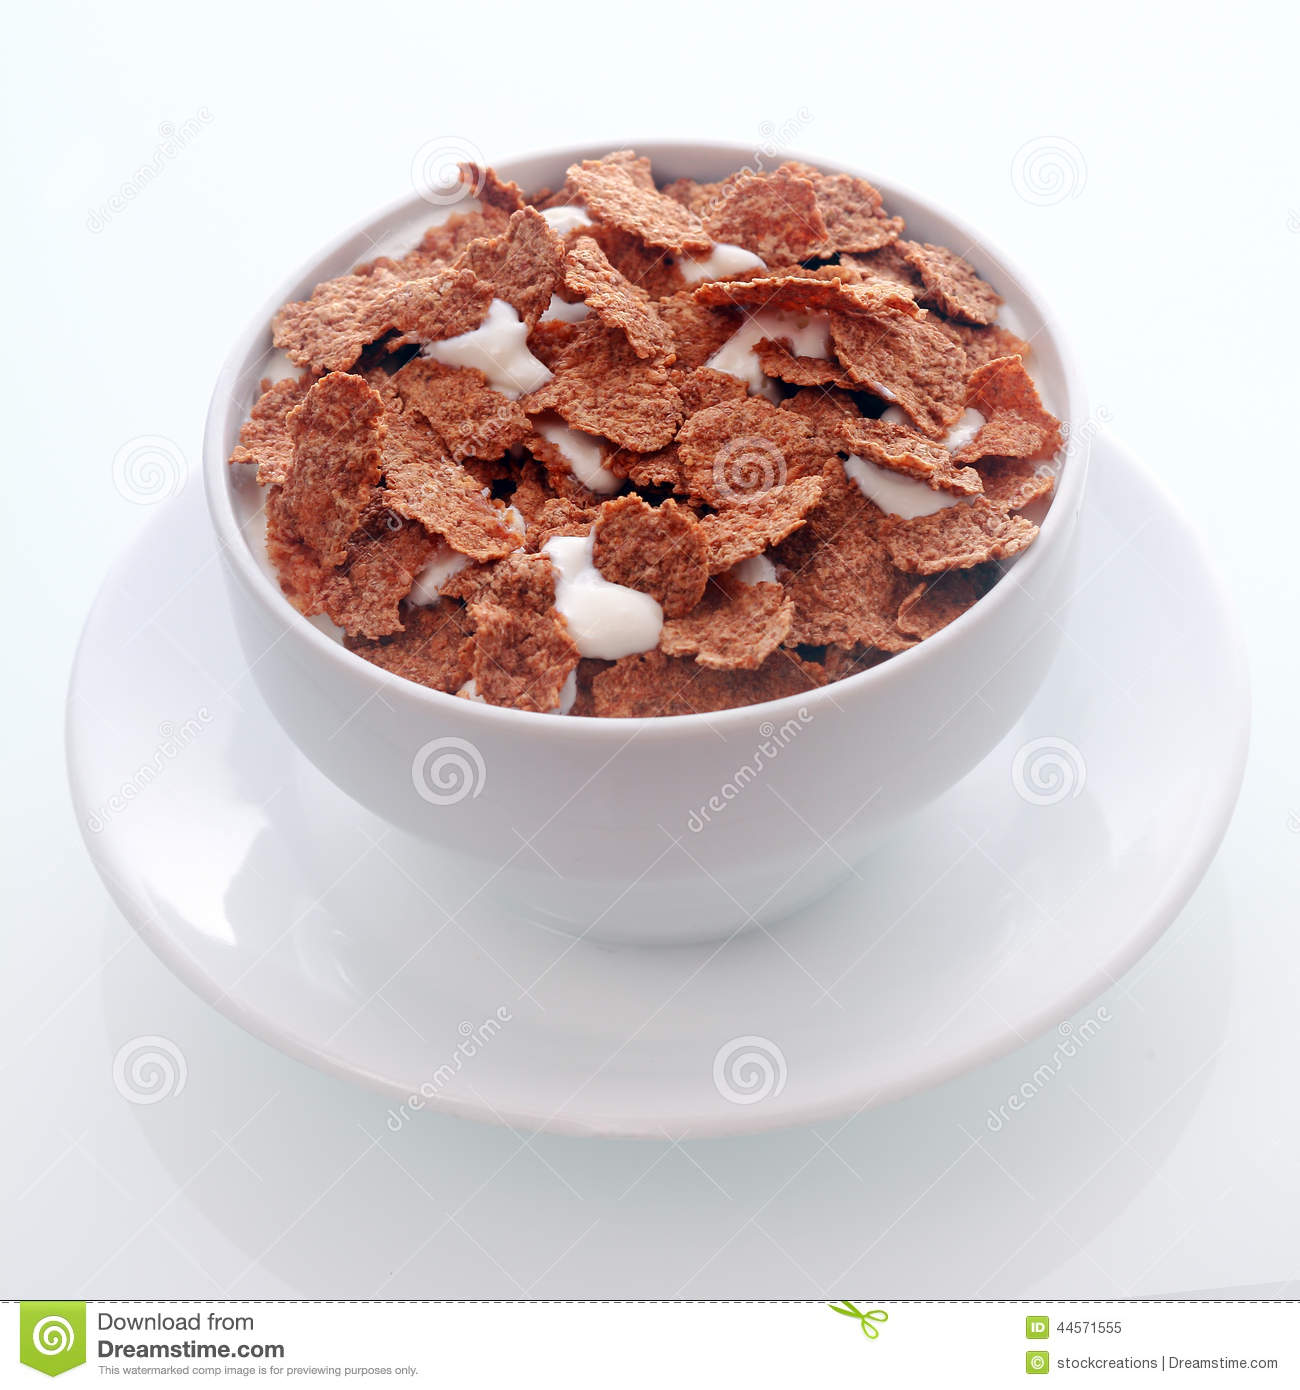 Chocolate Flavored Breakfast Cereal Stock Photo